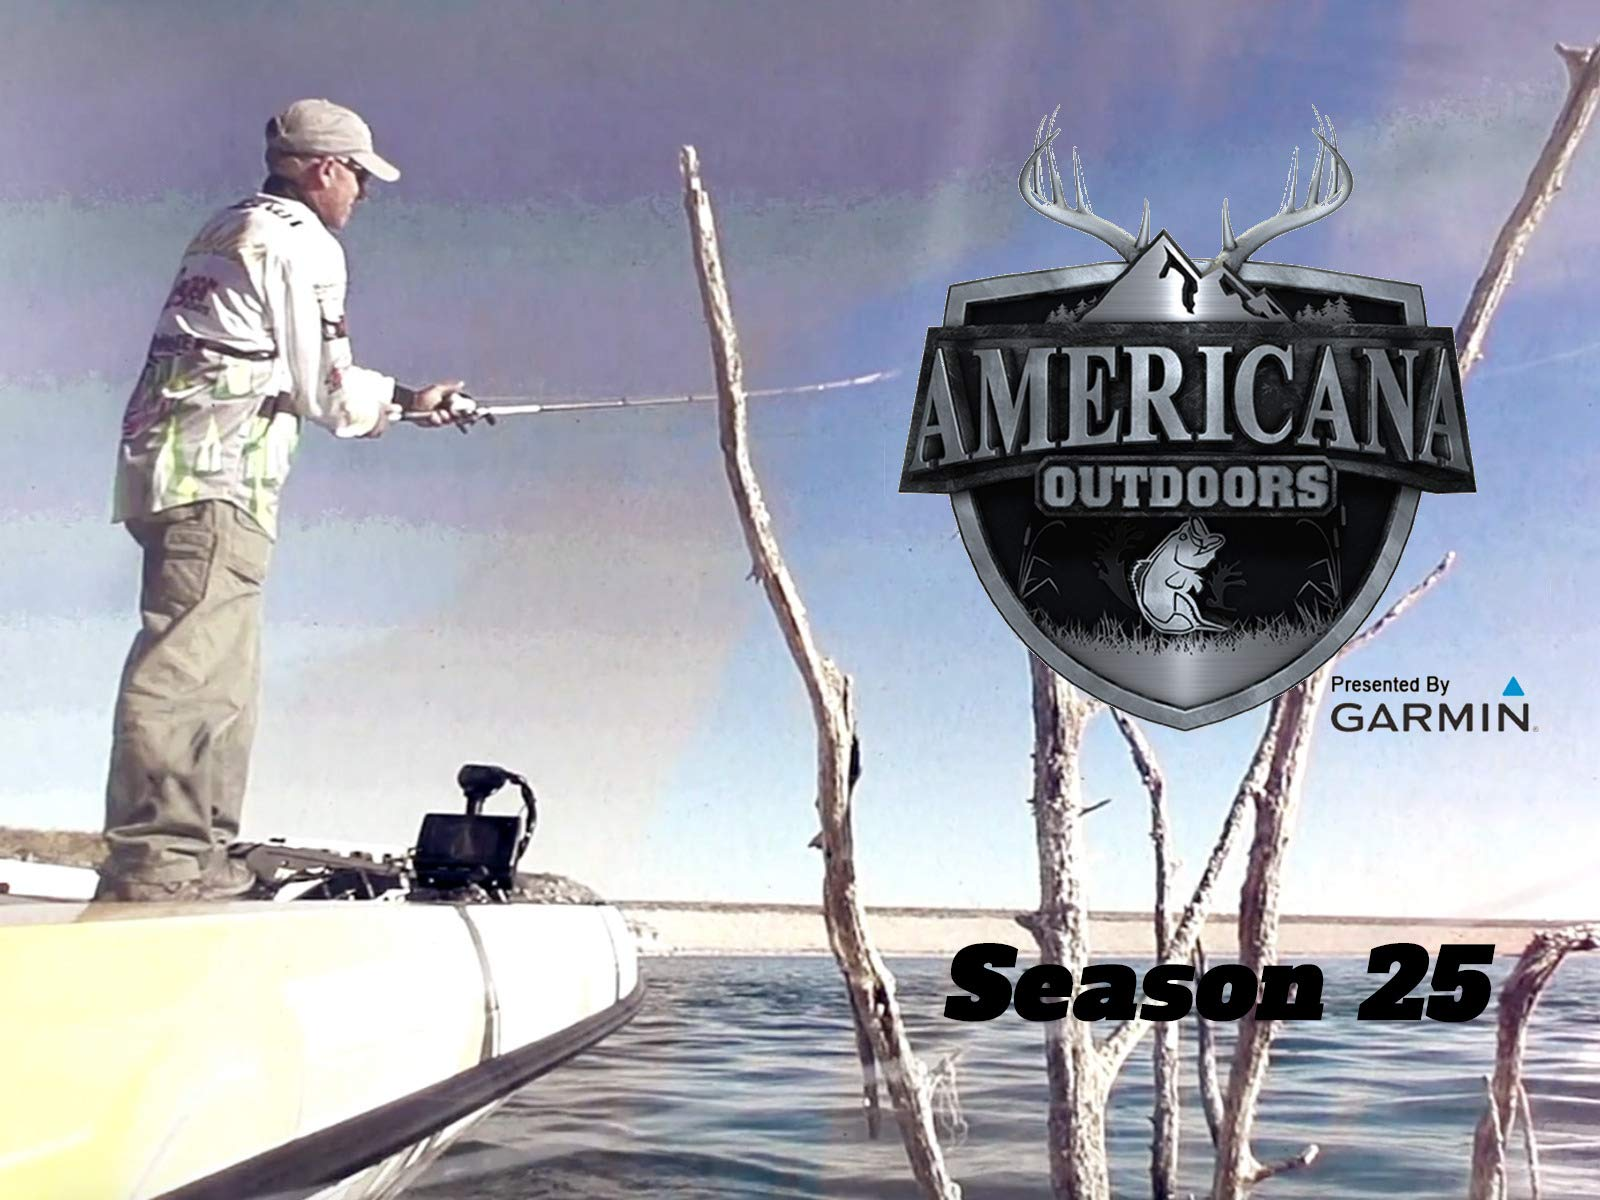 Americana Outdoors - Season 25